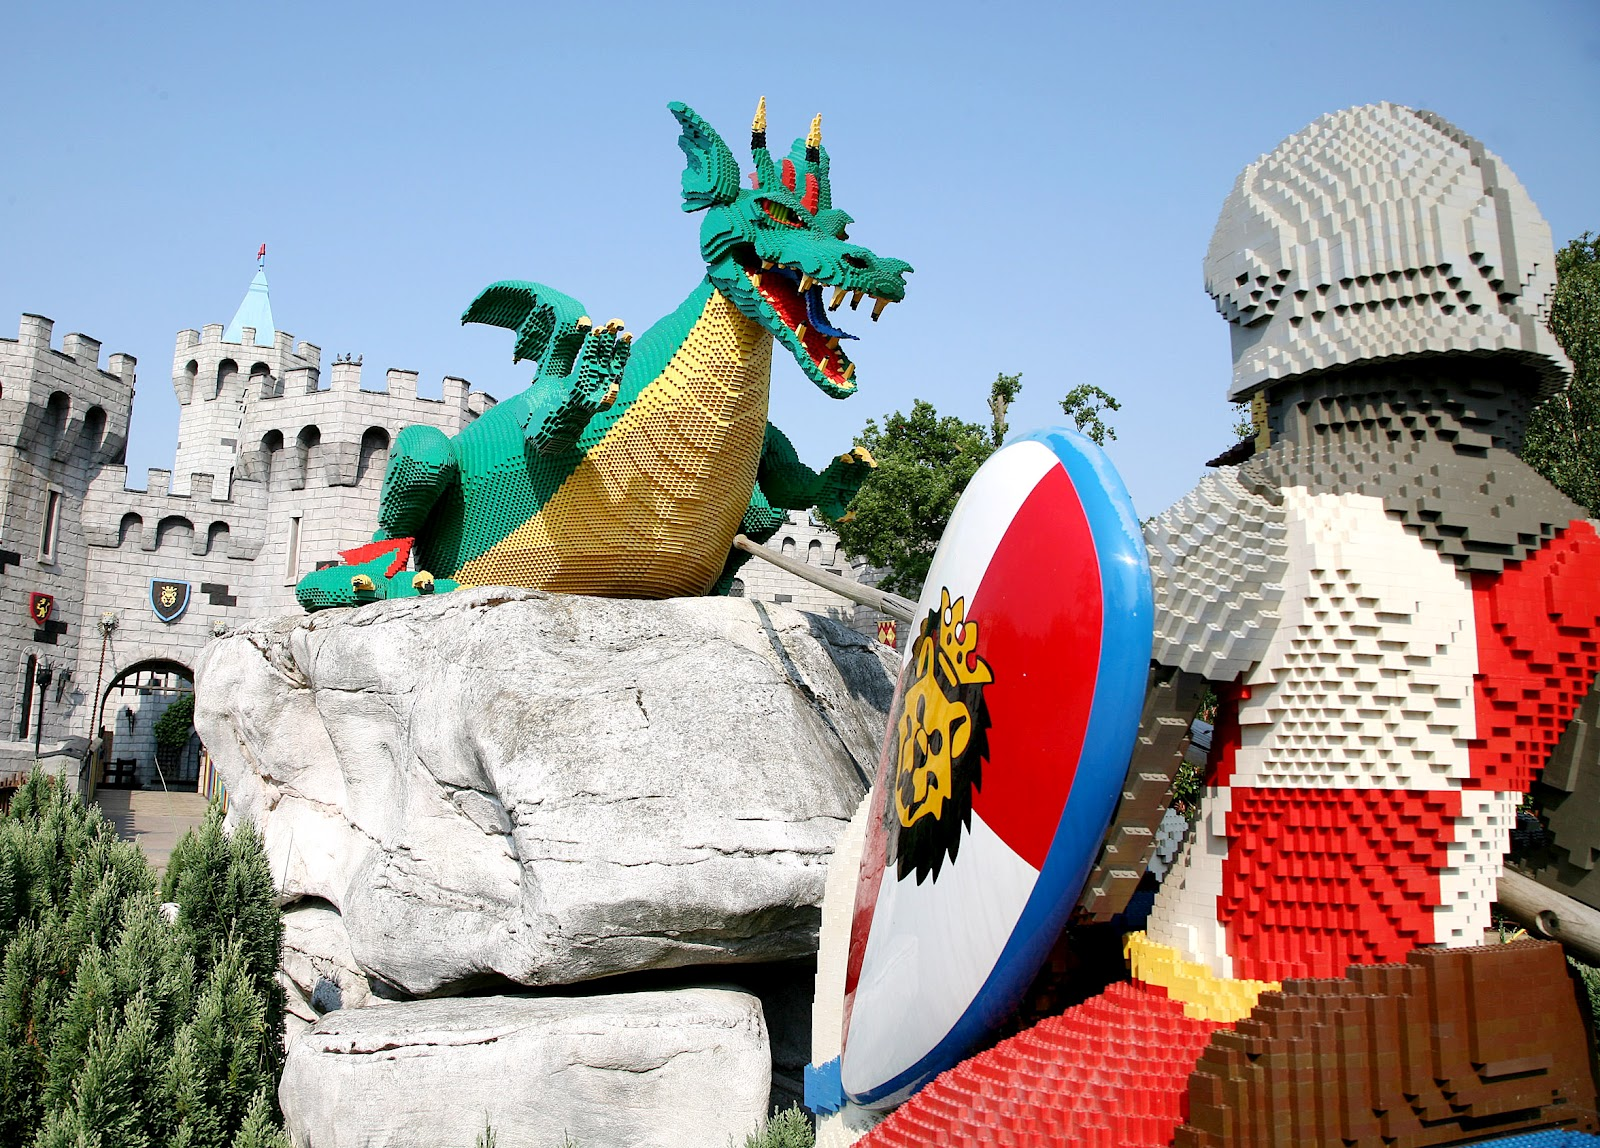 Out And About With Our Tot Legoland Windsor With 3 Year